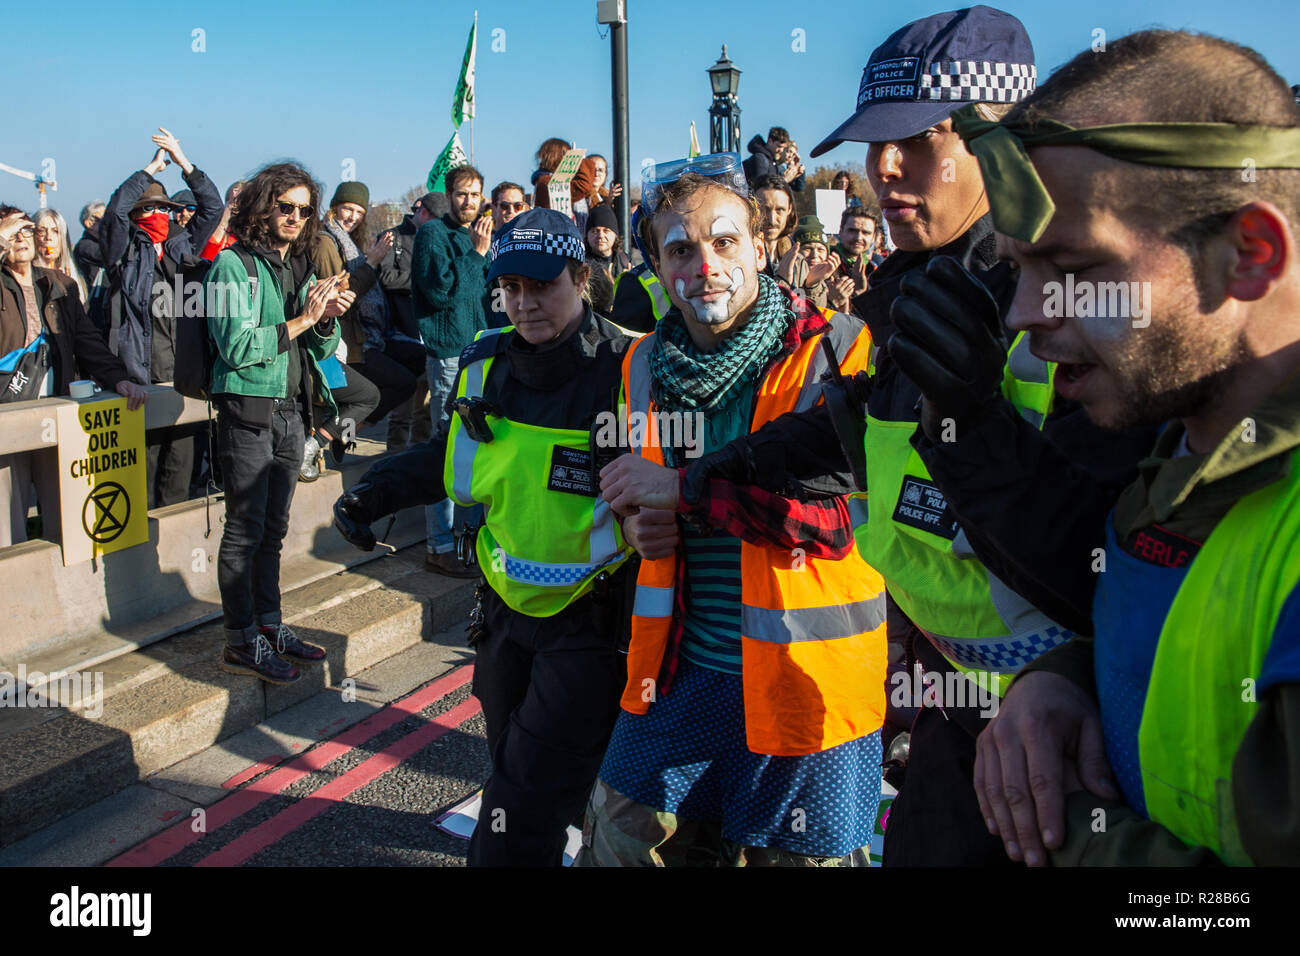 London, UK. 17th November, 2018. Police officers arrest a clown from Clandestine Insurgent Rebel Clown Army (CIRCA) after environmental campaigners from Extinction Rebellion blocked Lambeth Bridge, one of five bridges blocked in central London, as part of a Rebellion Day event to highlight 'criminal inaction in the face of climate change catastrophe and ecological collapse' by the UK Government as part of a programme of civil disobedience during which scores of campaigners have been arrested. Credit: Mark Kerrison/Alamy Live News Stock Photo